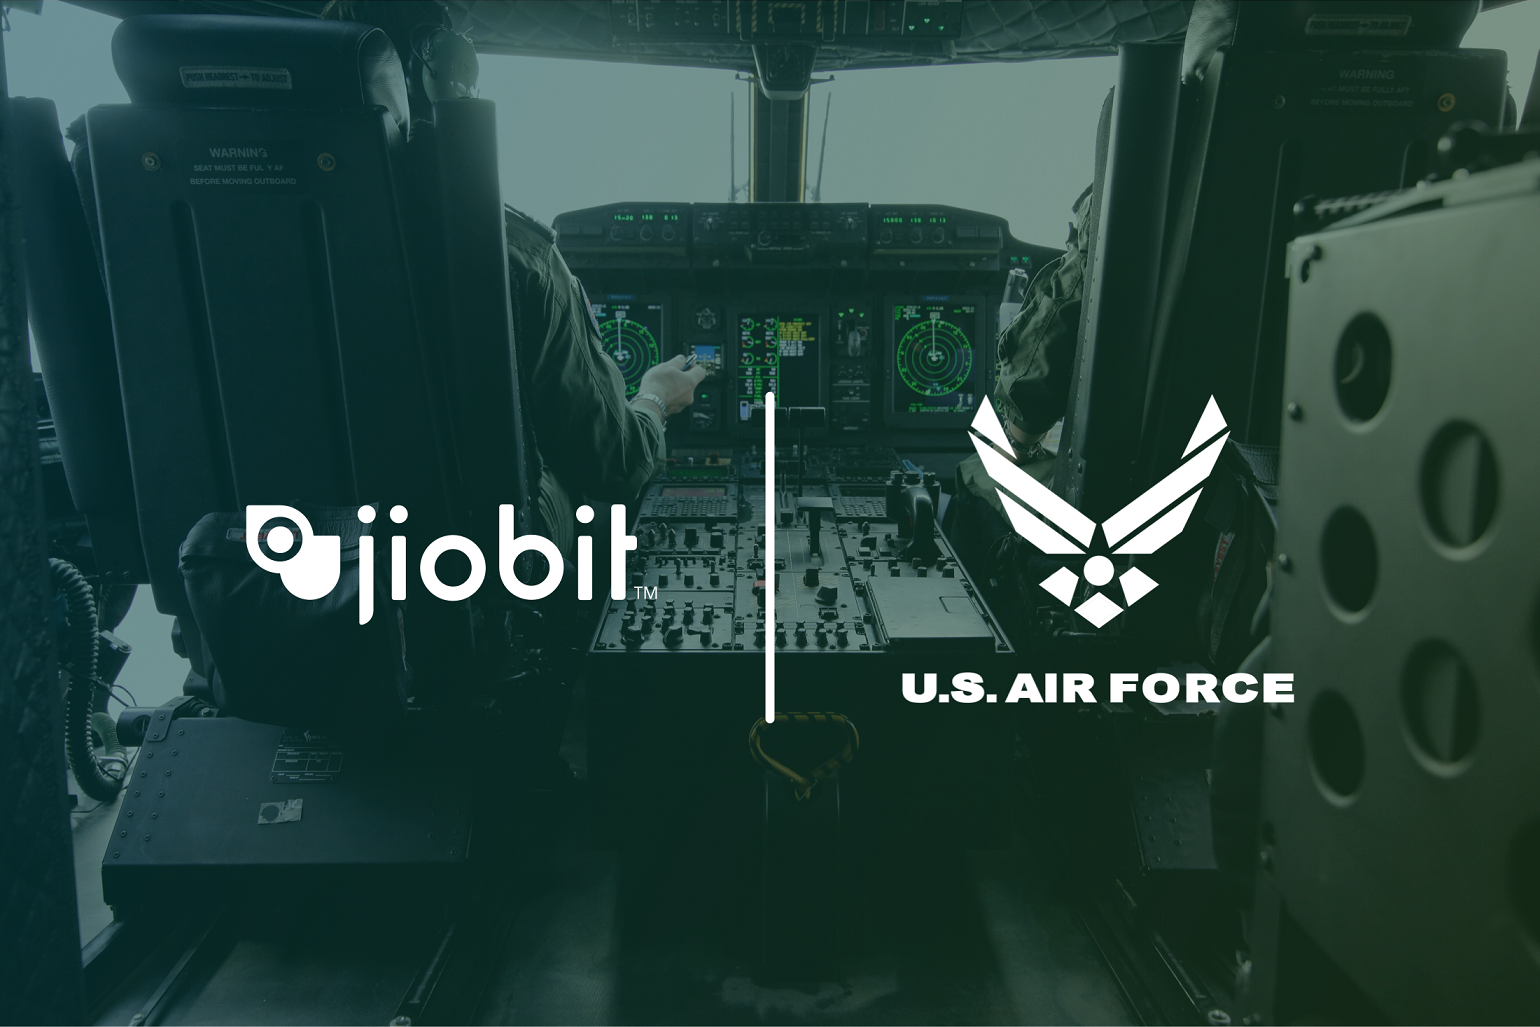 The U.S. Air Force has awarded Jiobit, an advanced location tracking platform, a substantial contract to proceed into Phase II of its Small Business Innovation & Research (SBIR) Program. Established in 1982, the SBIR is a highly competitive program that supports research and development by small businesses with strong potential for military and commercial use.